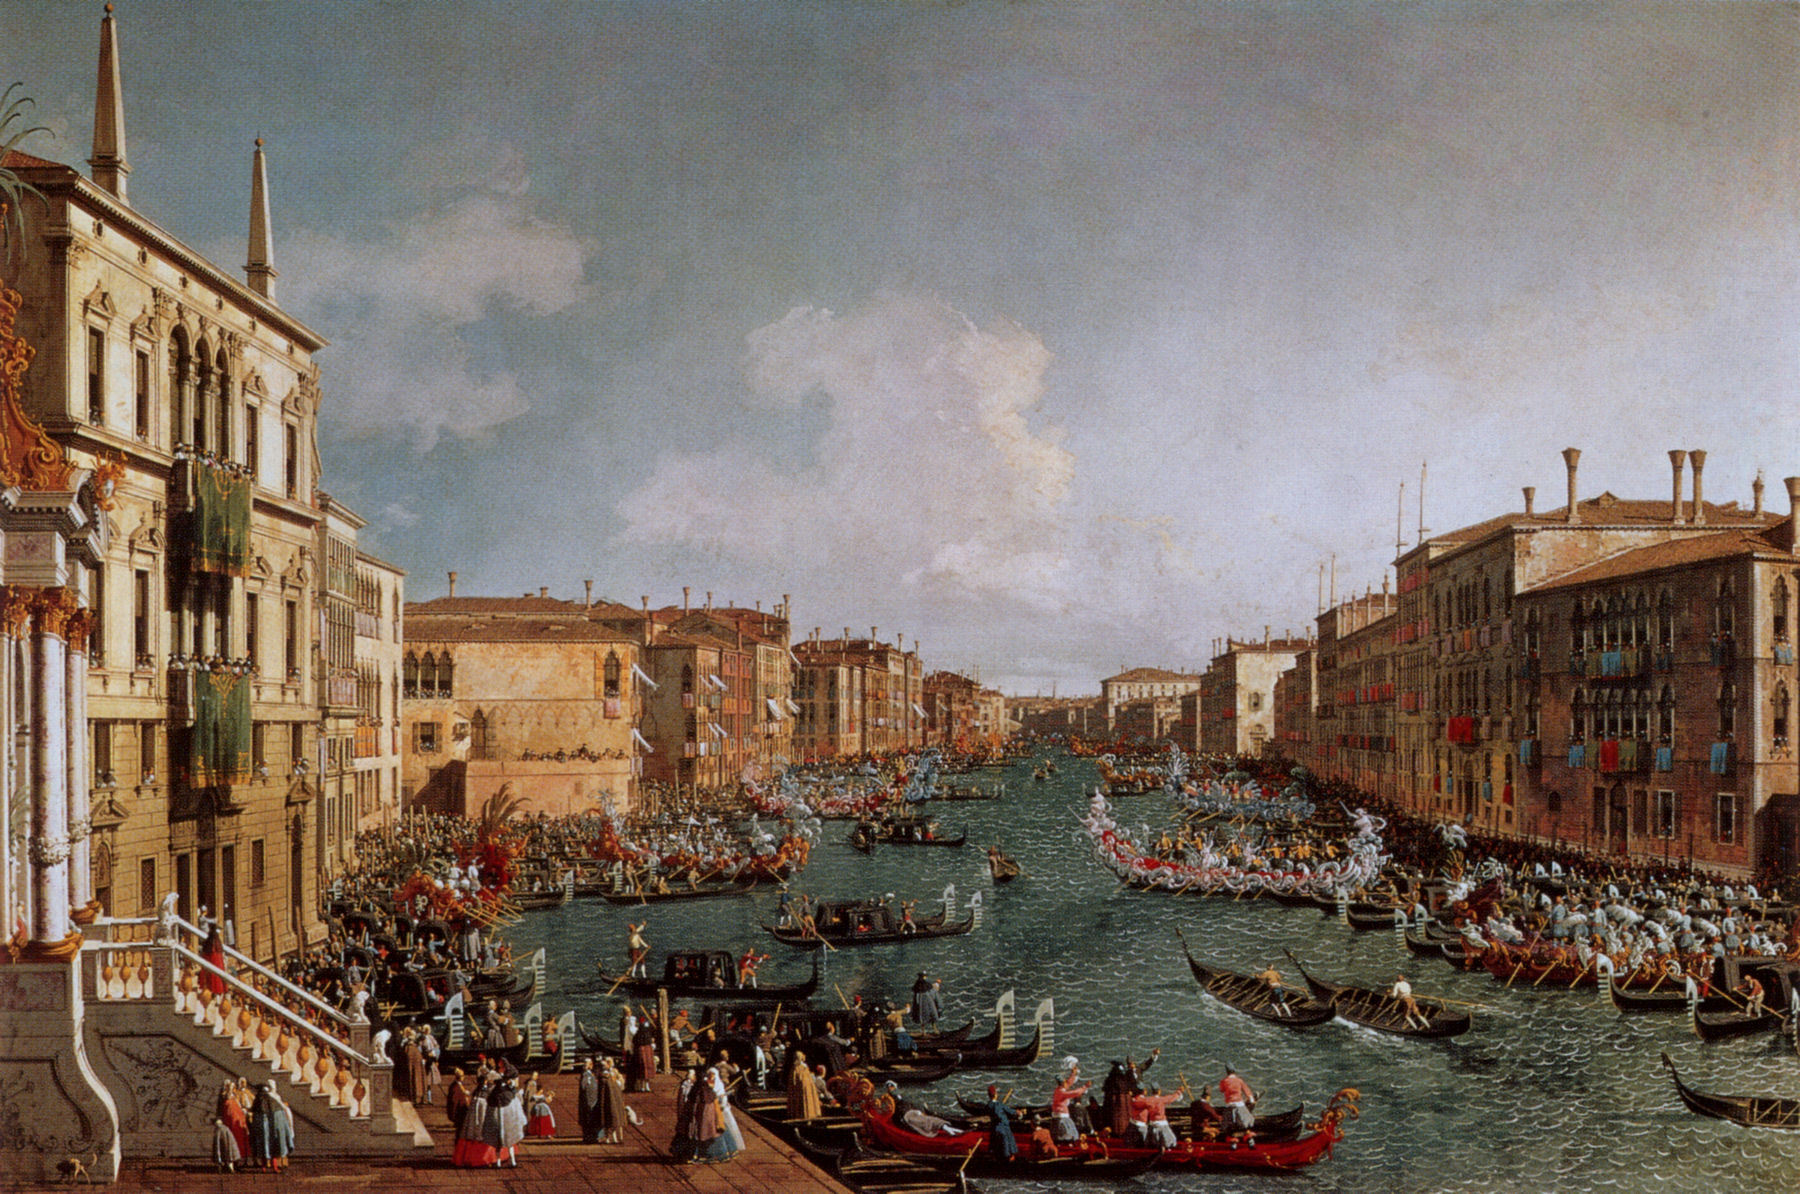 regatta-on-canalegrande-egykor-canaletto-1735c.jpg